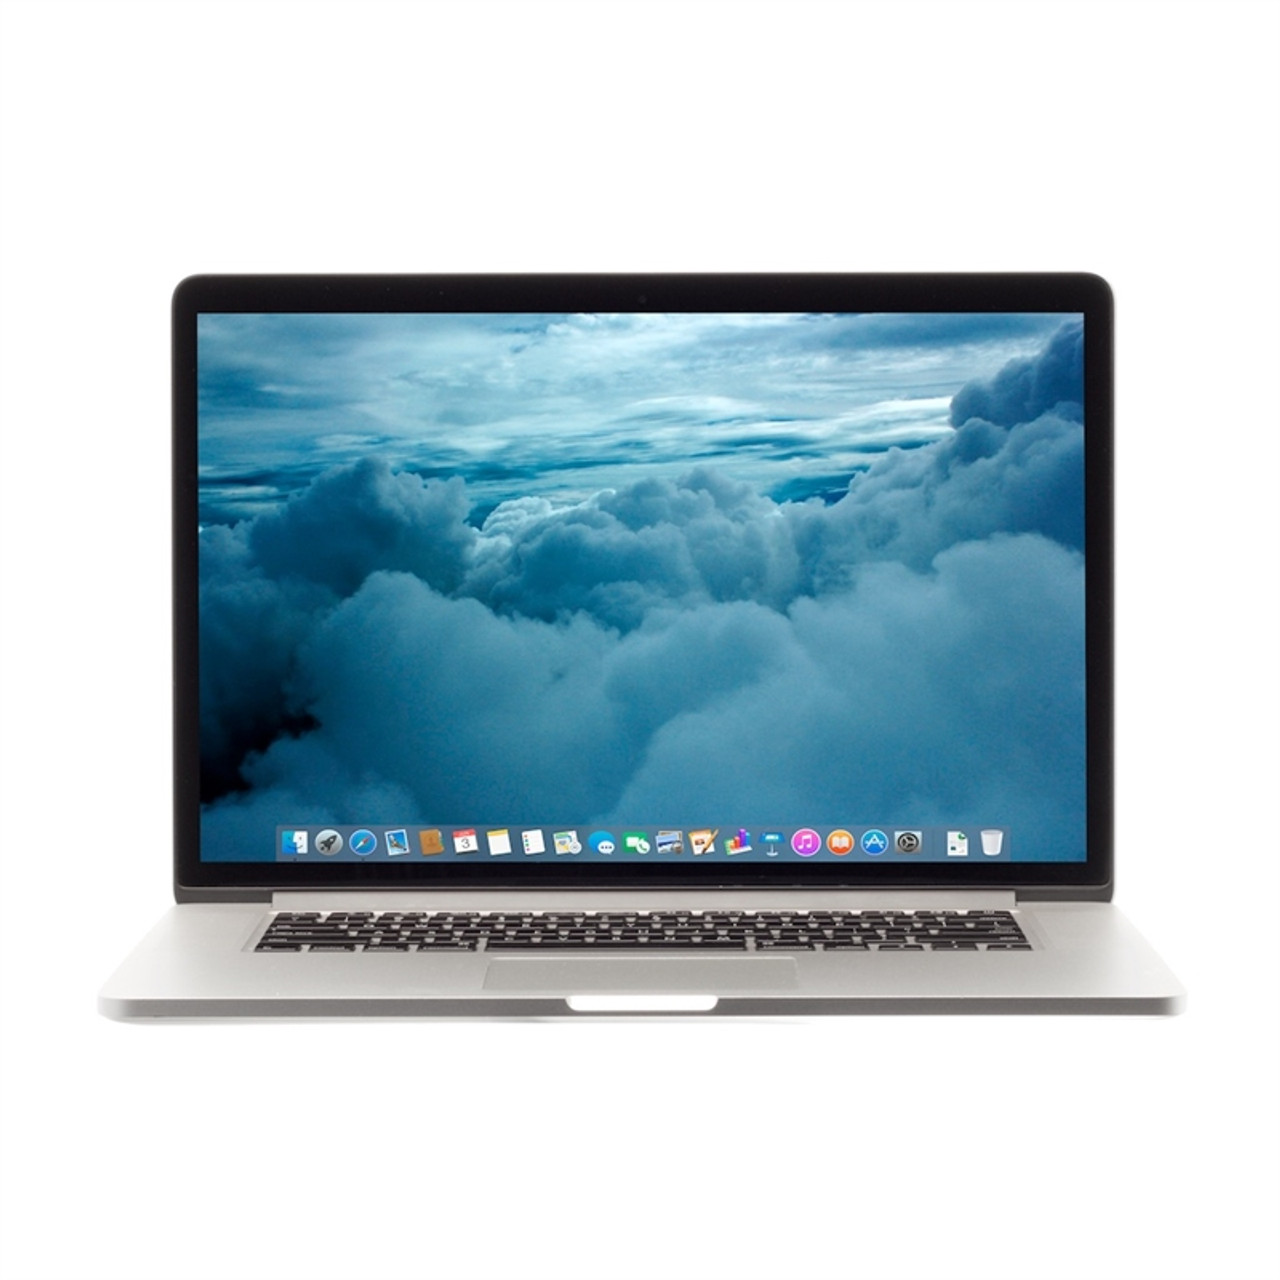 Apple MacBook Pro 15-inch 2.2GHz Quad-core i7 (Retina, Mid 2014) MGXA2LL/A on map of store locations, map it academy, map to college,